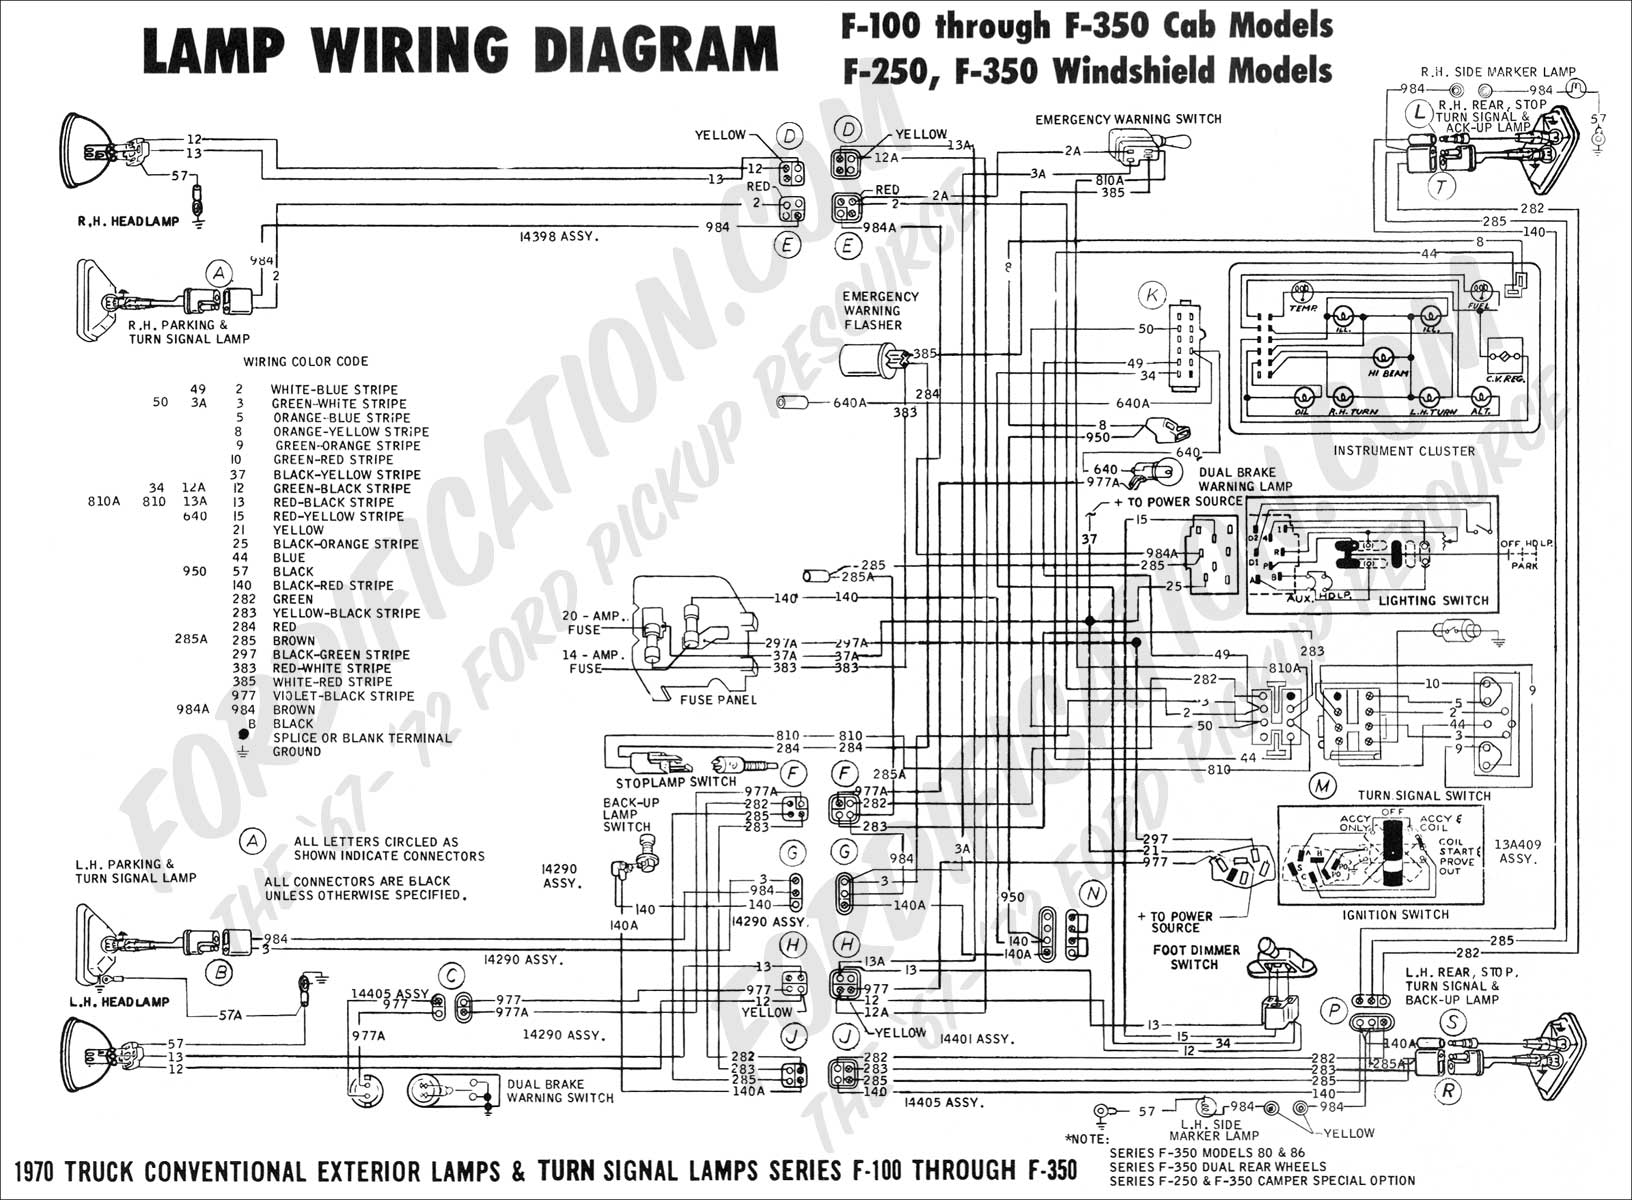 wiring diagram_70ext lights01 electrical wiring diagram online electric generator wiring diagram 1964 Ford Fairlane at crackthecode.co